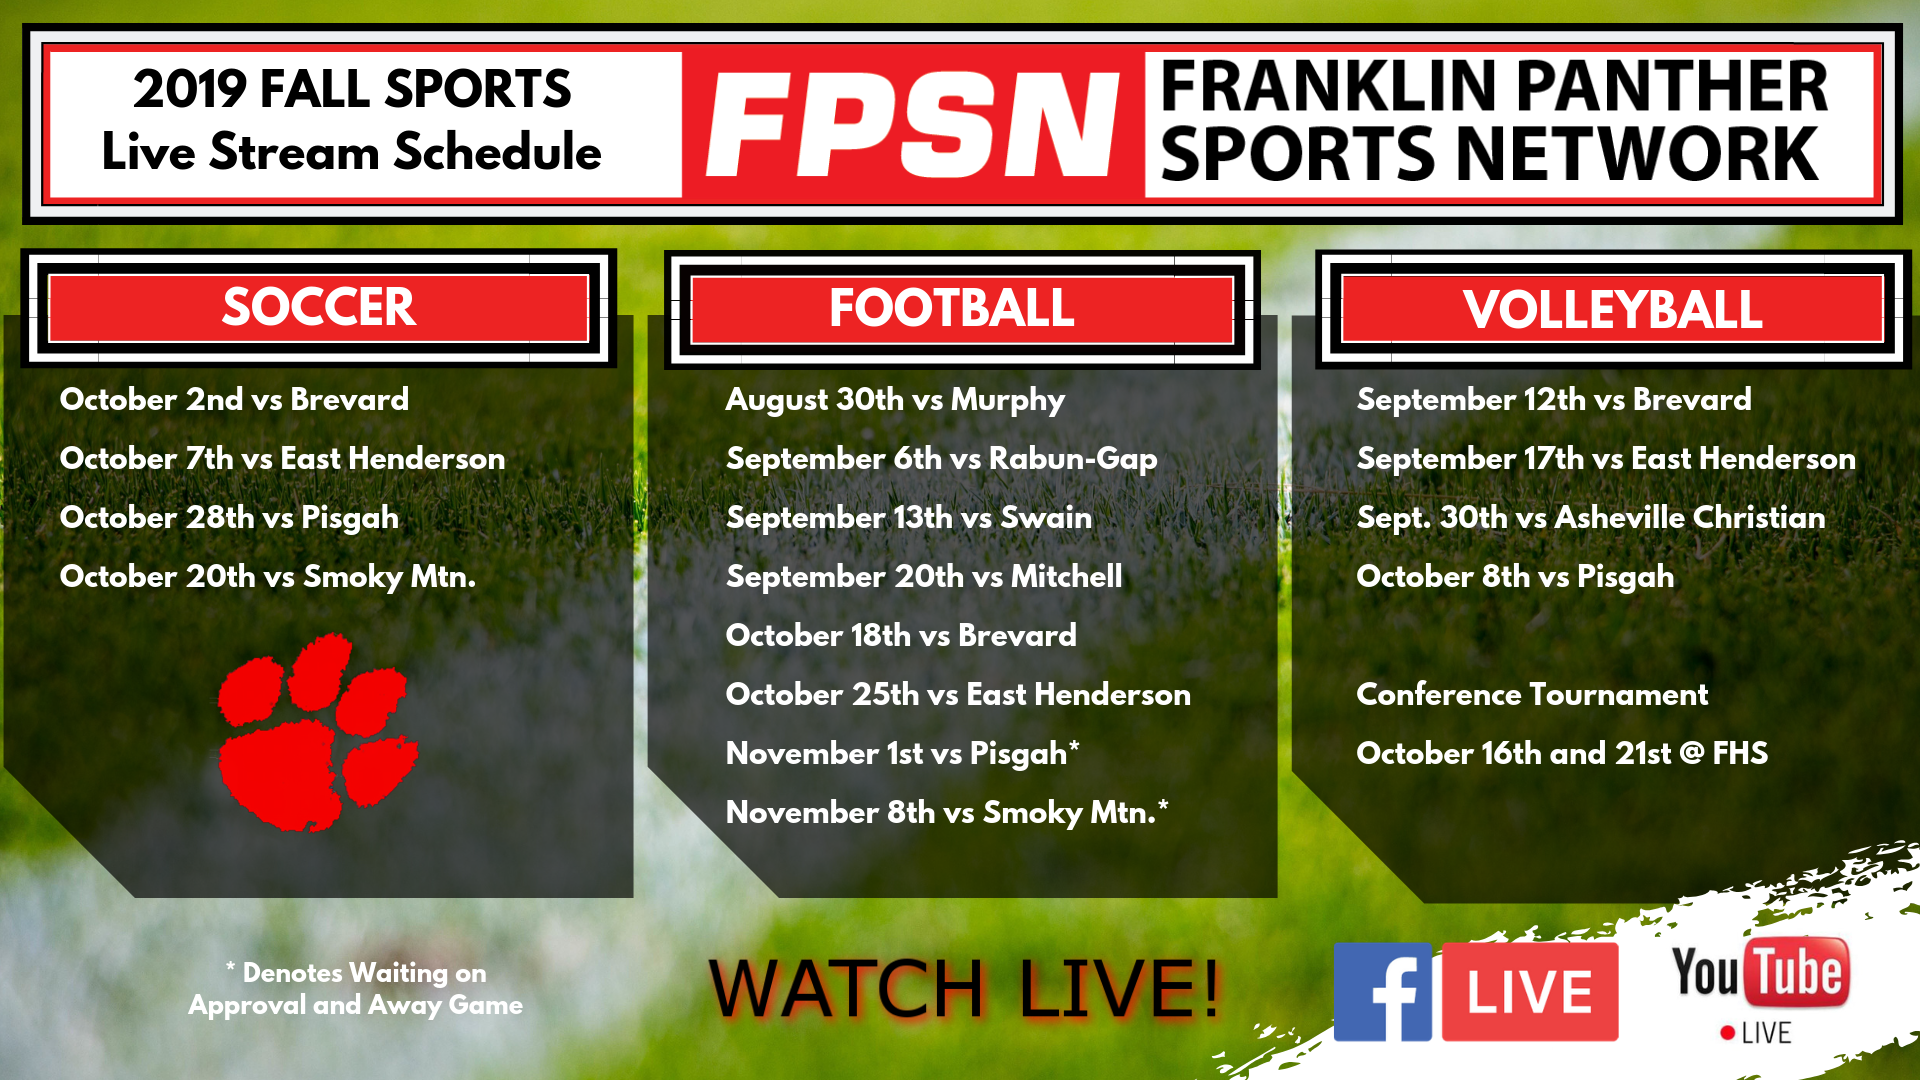 FPSN Live Stream Schedule 2019 Fall